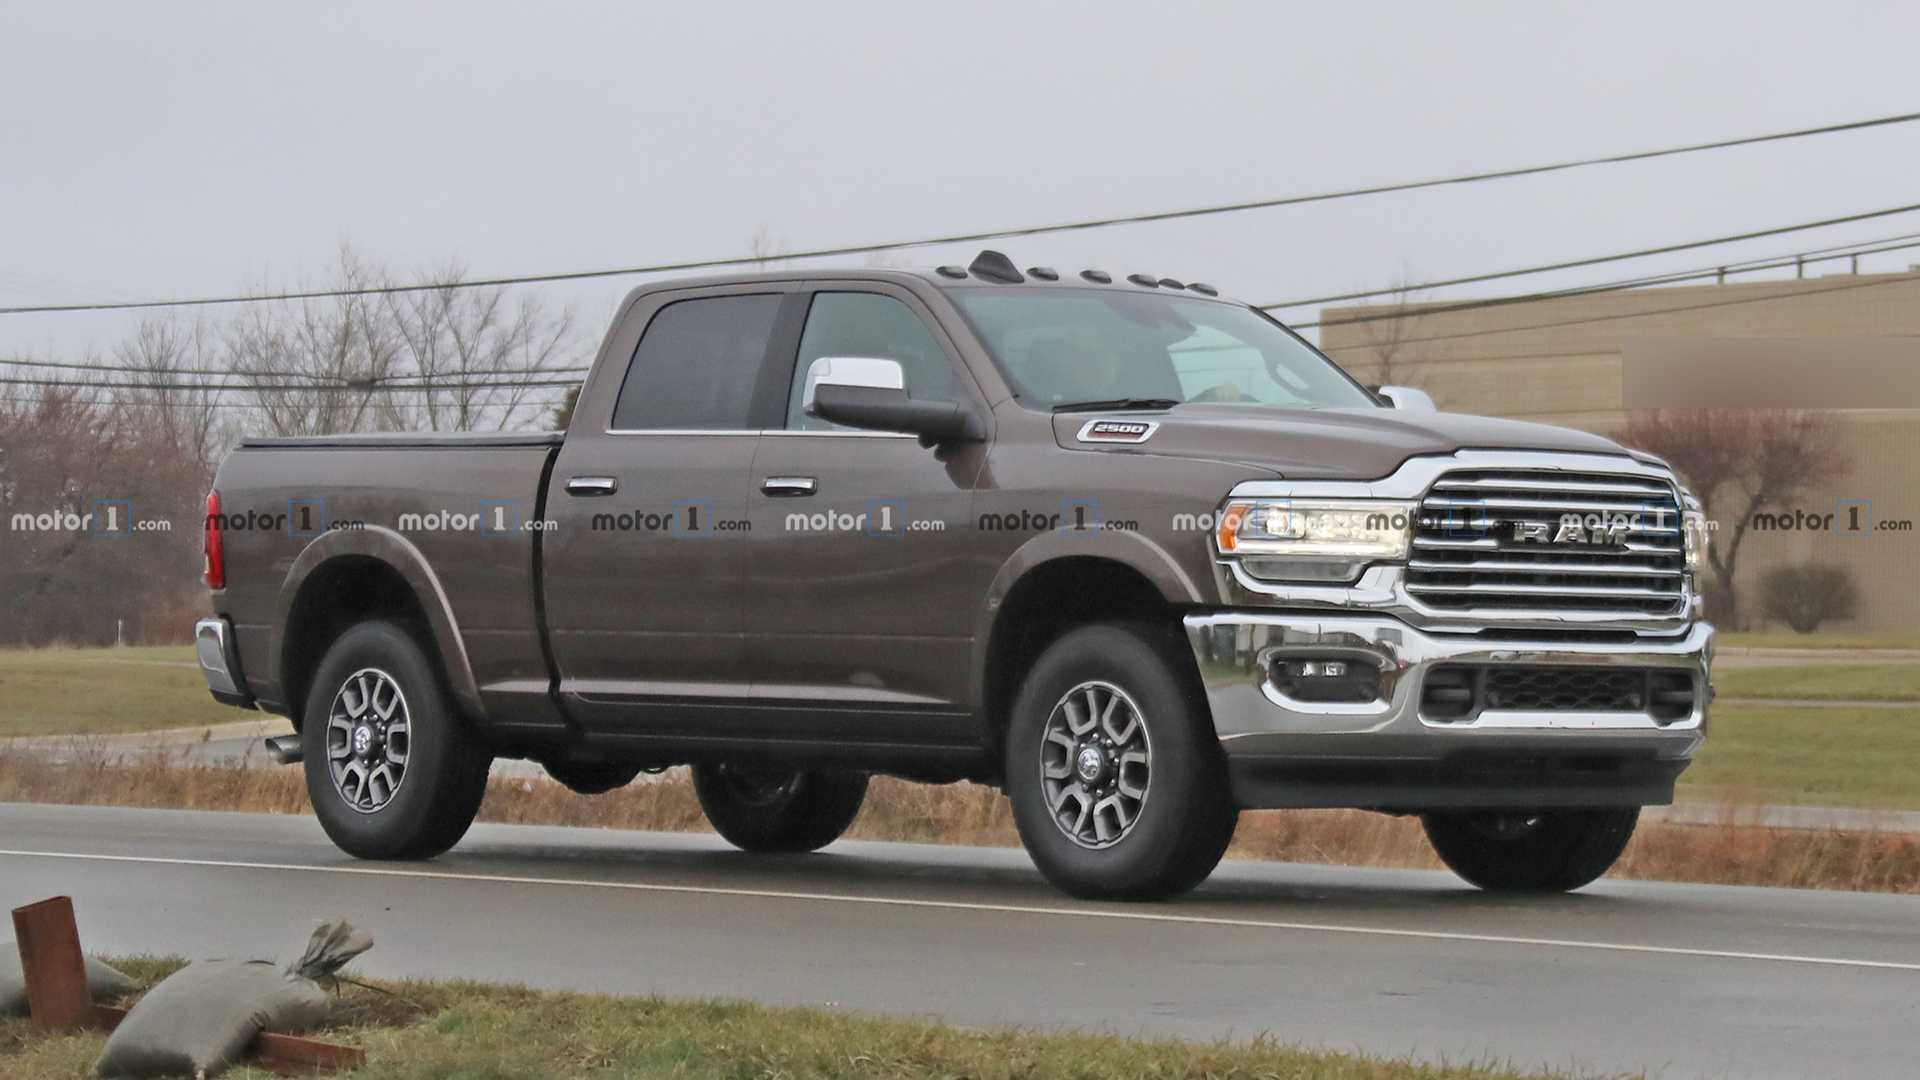 58 The 2020 Dodge Ram 3500 Reviews